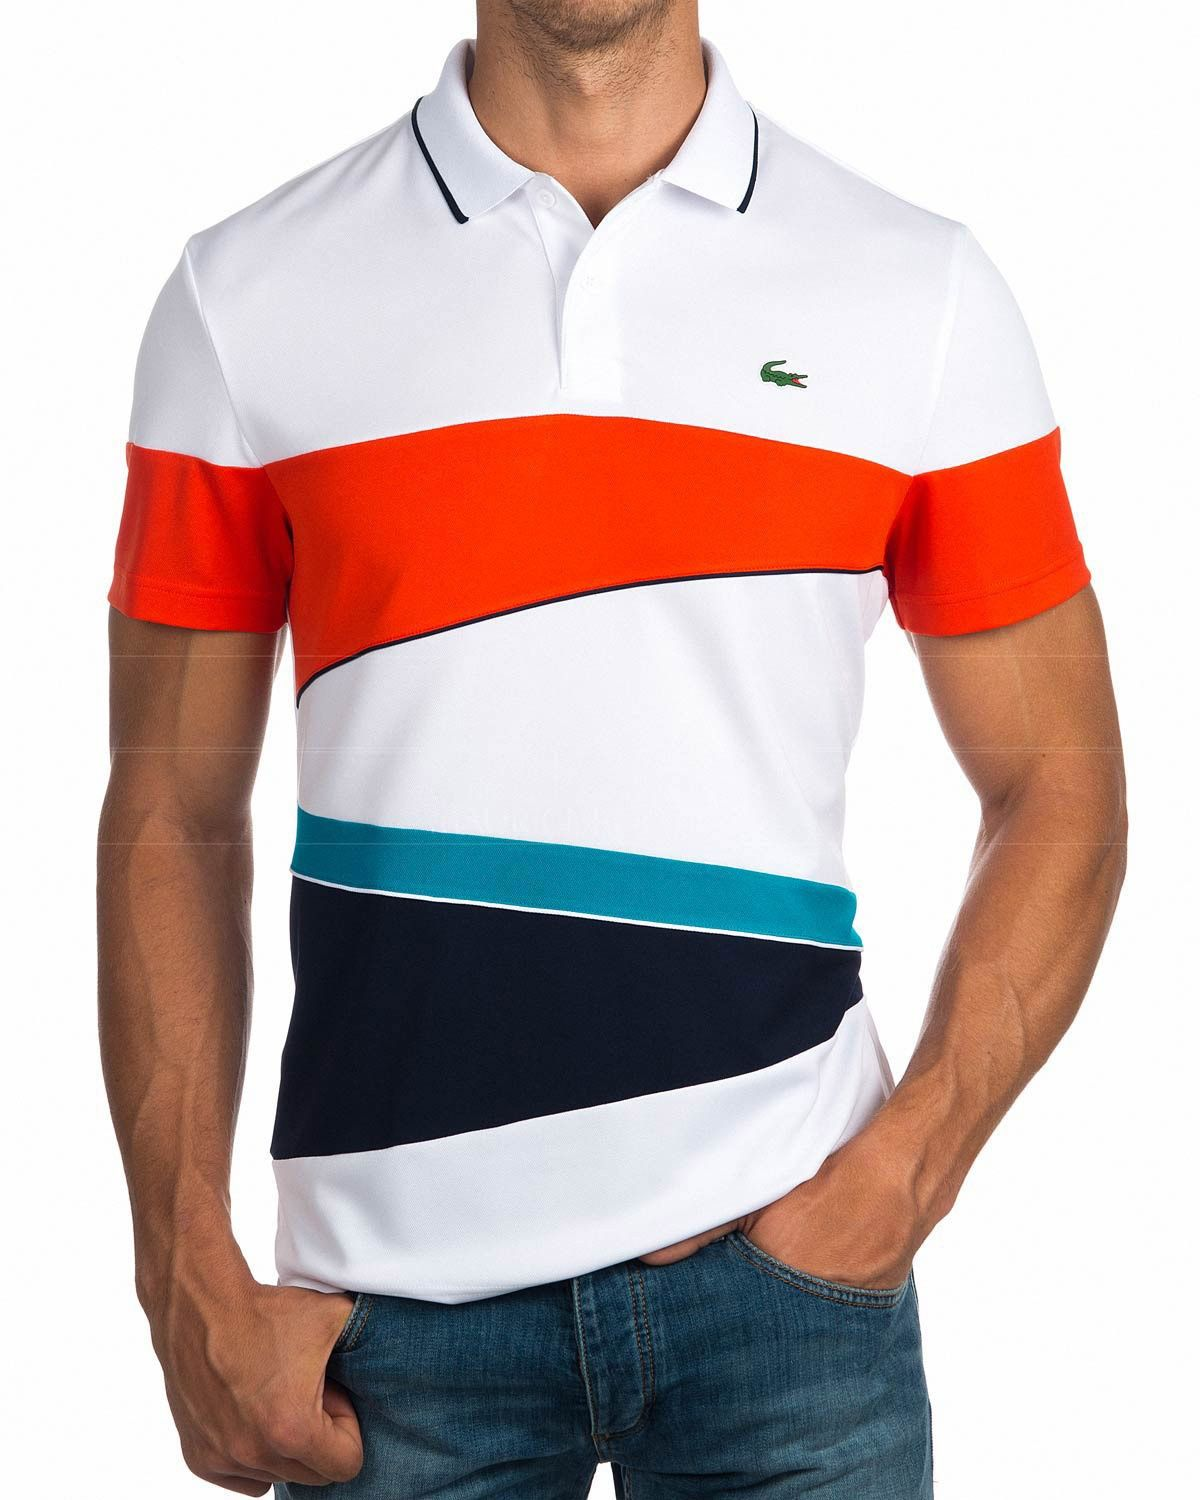 788c1c4863 Polos Lacoste ® Multicolor | ENVIO GRATIS | Cut & Sew(colour block ...